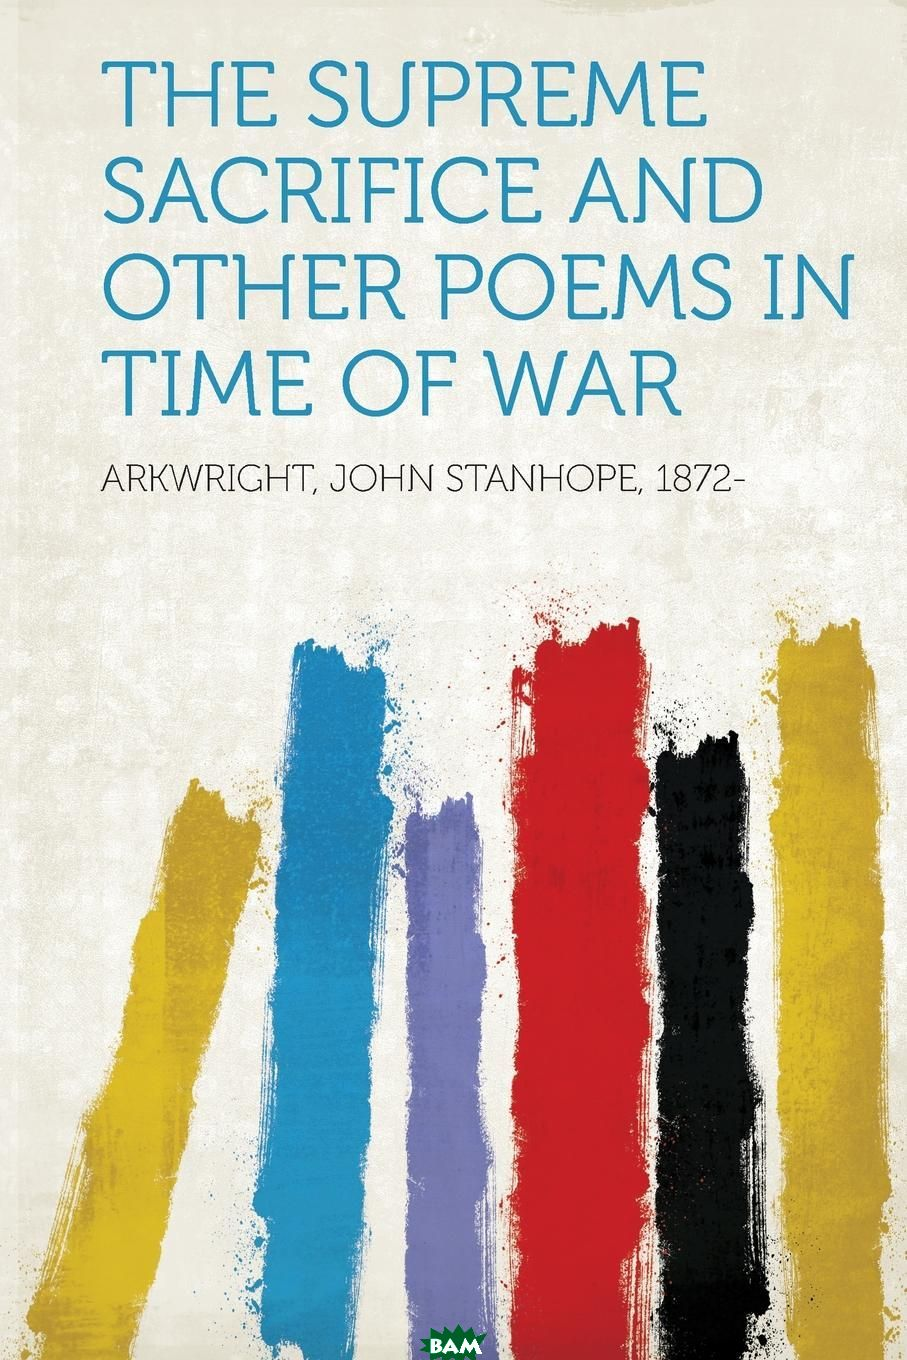 Arkwright John Stanhope 1872- / The Supreme Sacrifice and Other Poems in Time of War